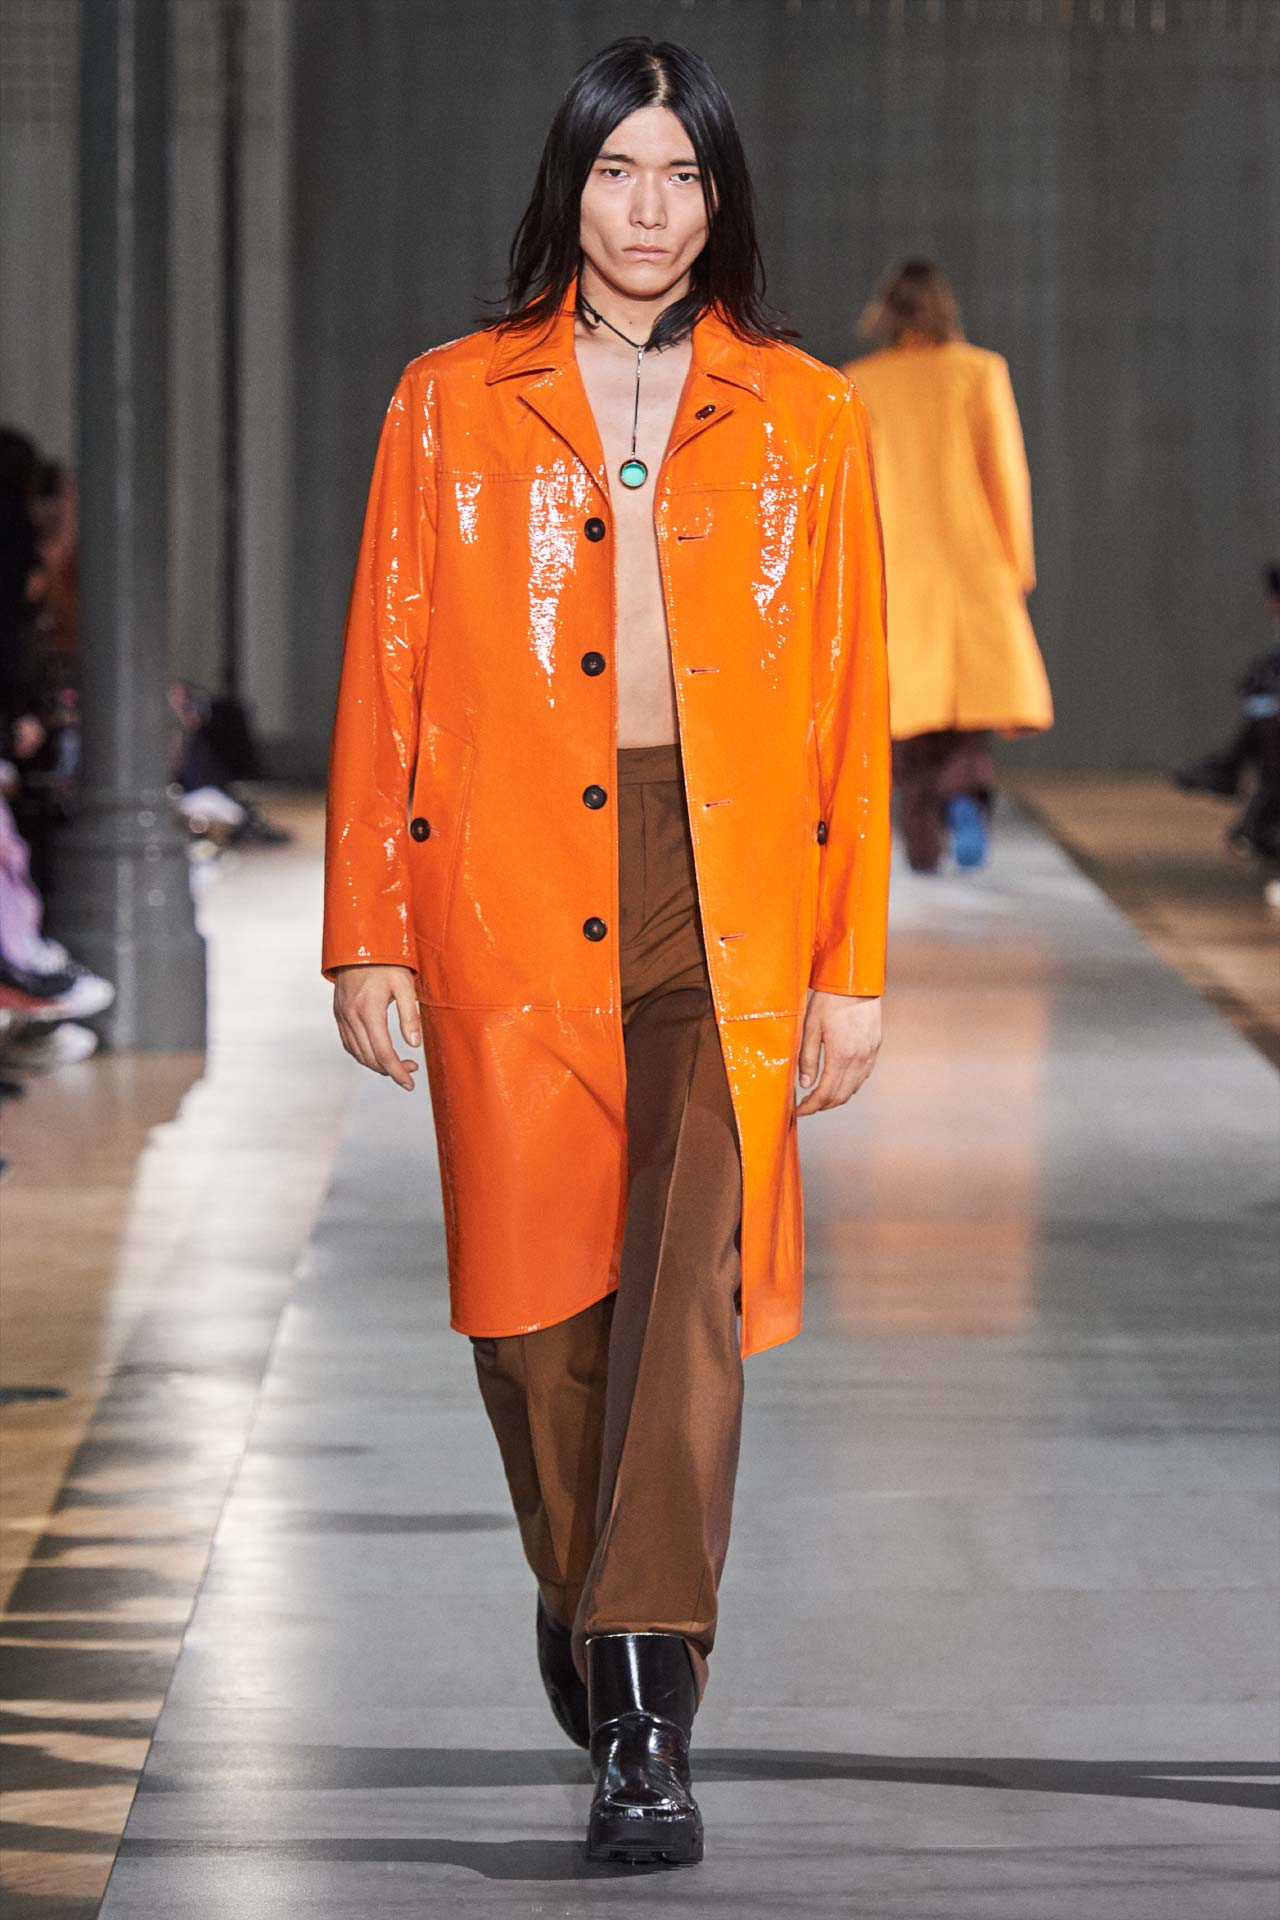 Look Fall/Winter 2019, image 32